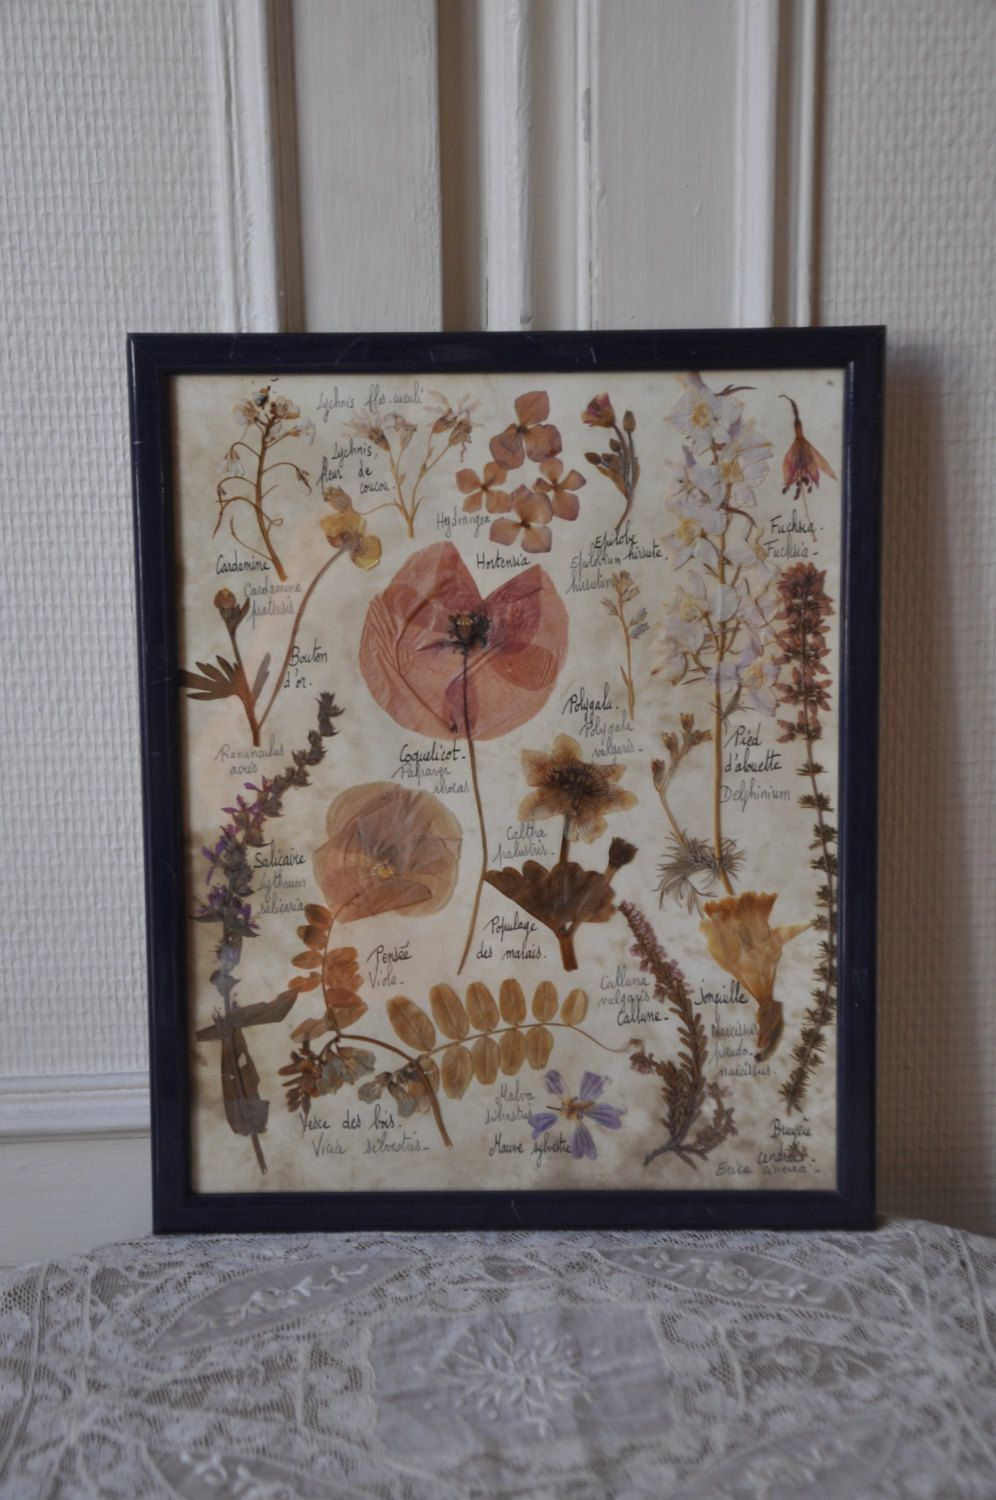 French s framed botanical art pressed flower arrangement